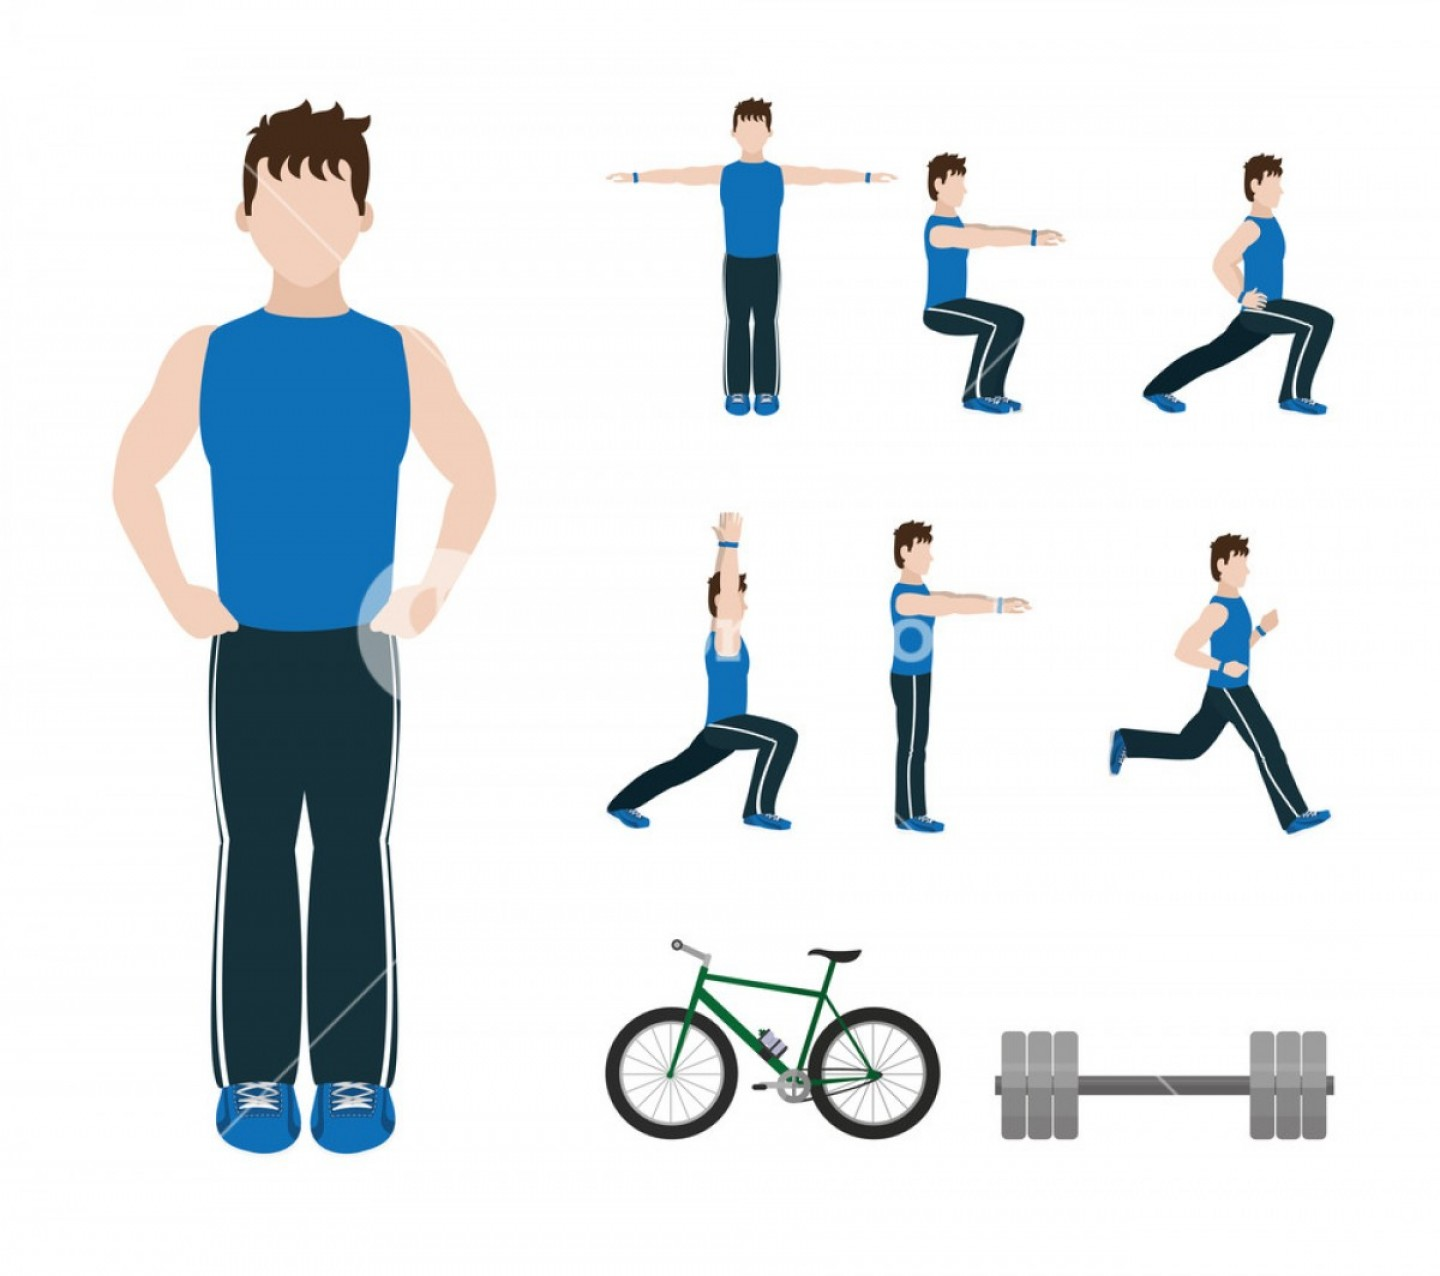 Man Vector Exercise: Fitness Man Doing Exercise And Stretching Vector Illustration Graphic Design Hnzkhvdpfjgskix